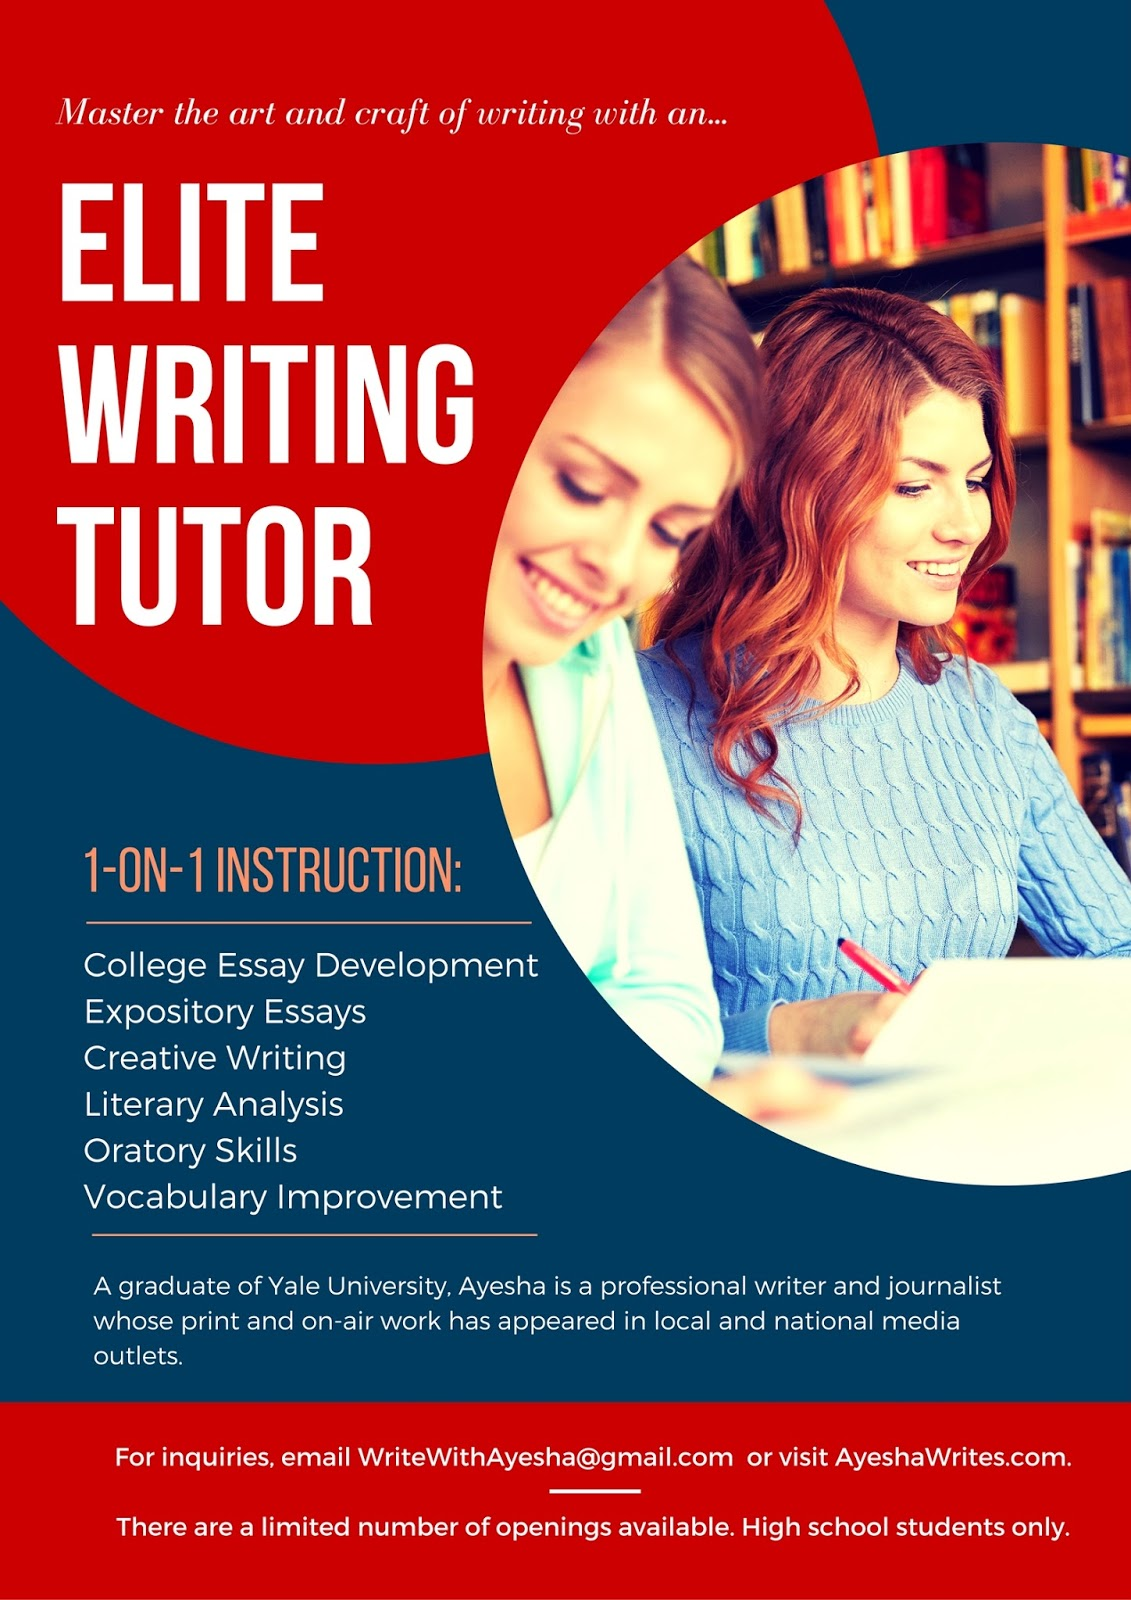 college essay on creative writing The essay is the most important part of a college appllication, see sample essays perfect for applying to schools in the us  sample college admission essays this section contains two examples of good college essays  i aided in designing a study, writing an institutional review board (irb) application, running participants through both.